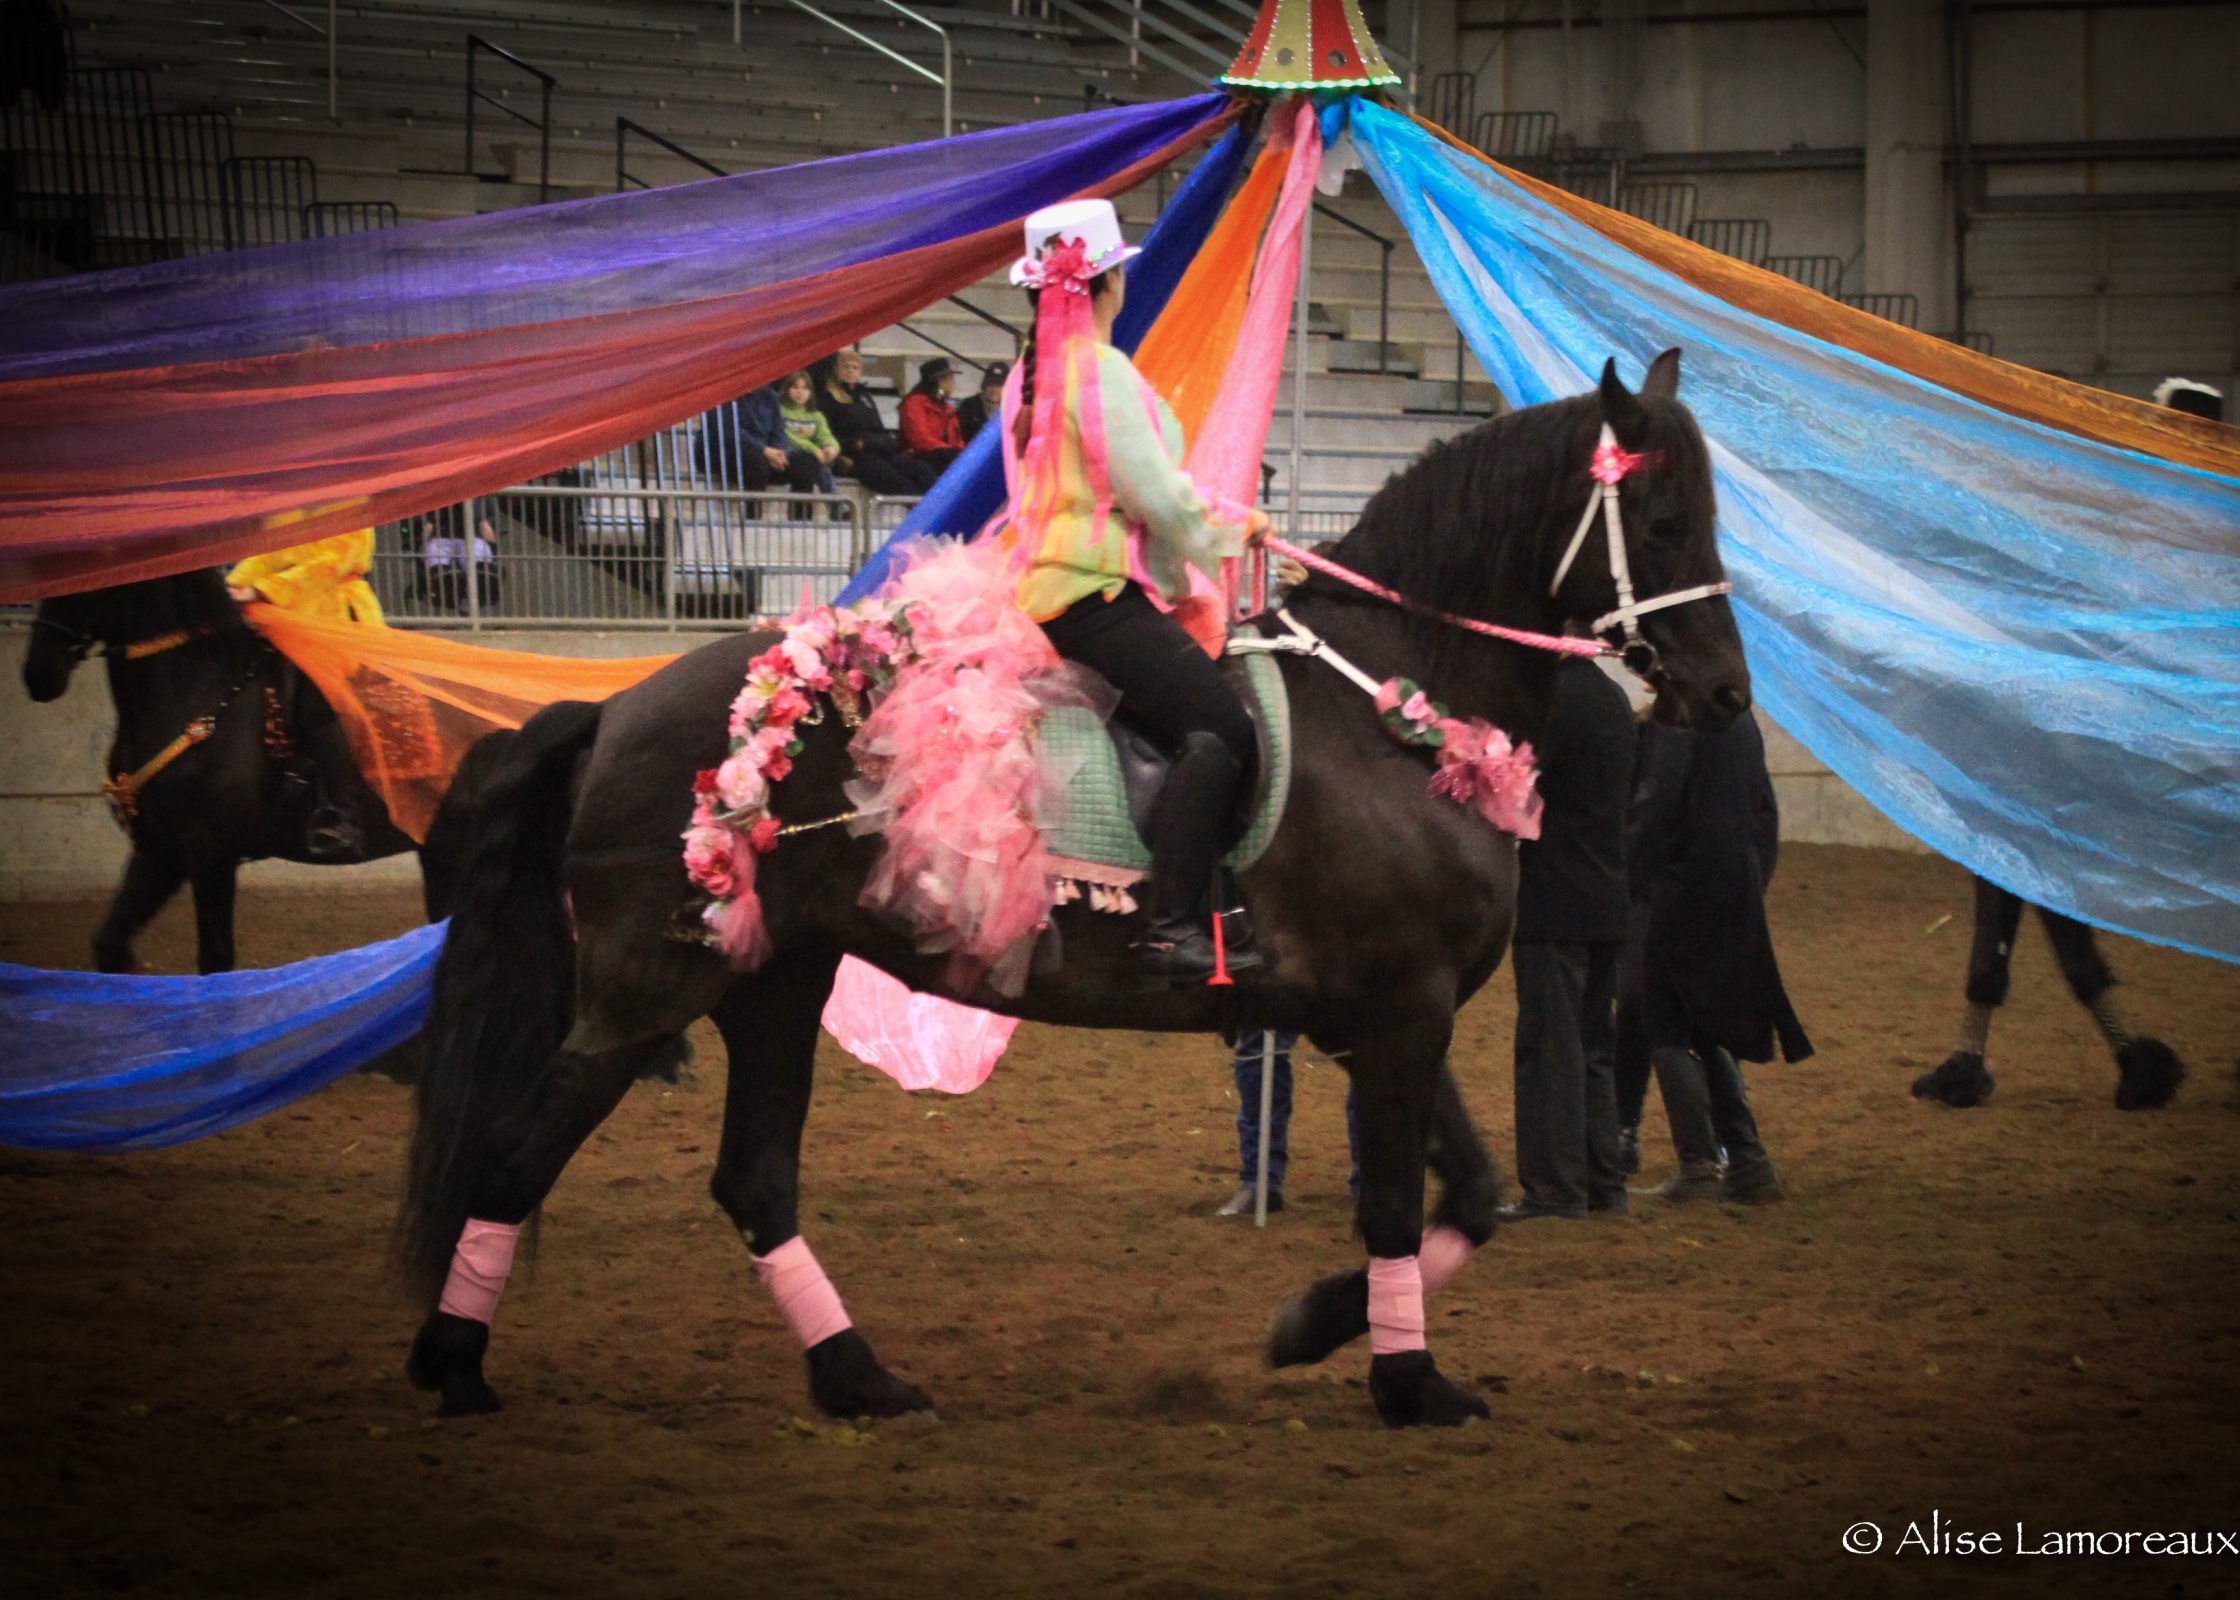 Photo of a woman in a brightly colored riding outfit riding a purebred horse at the NW Horse Show & Expo in Albany Oregon